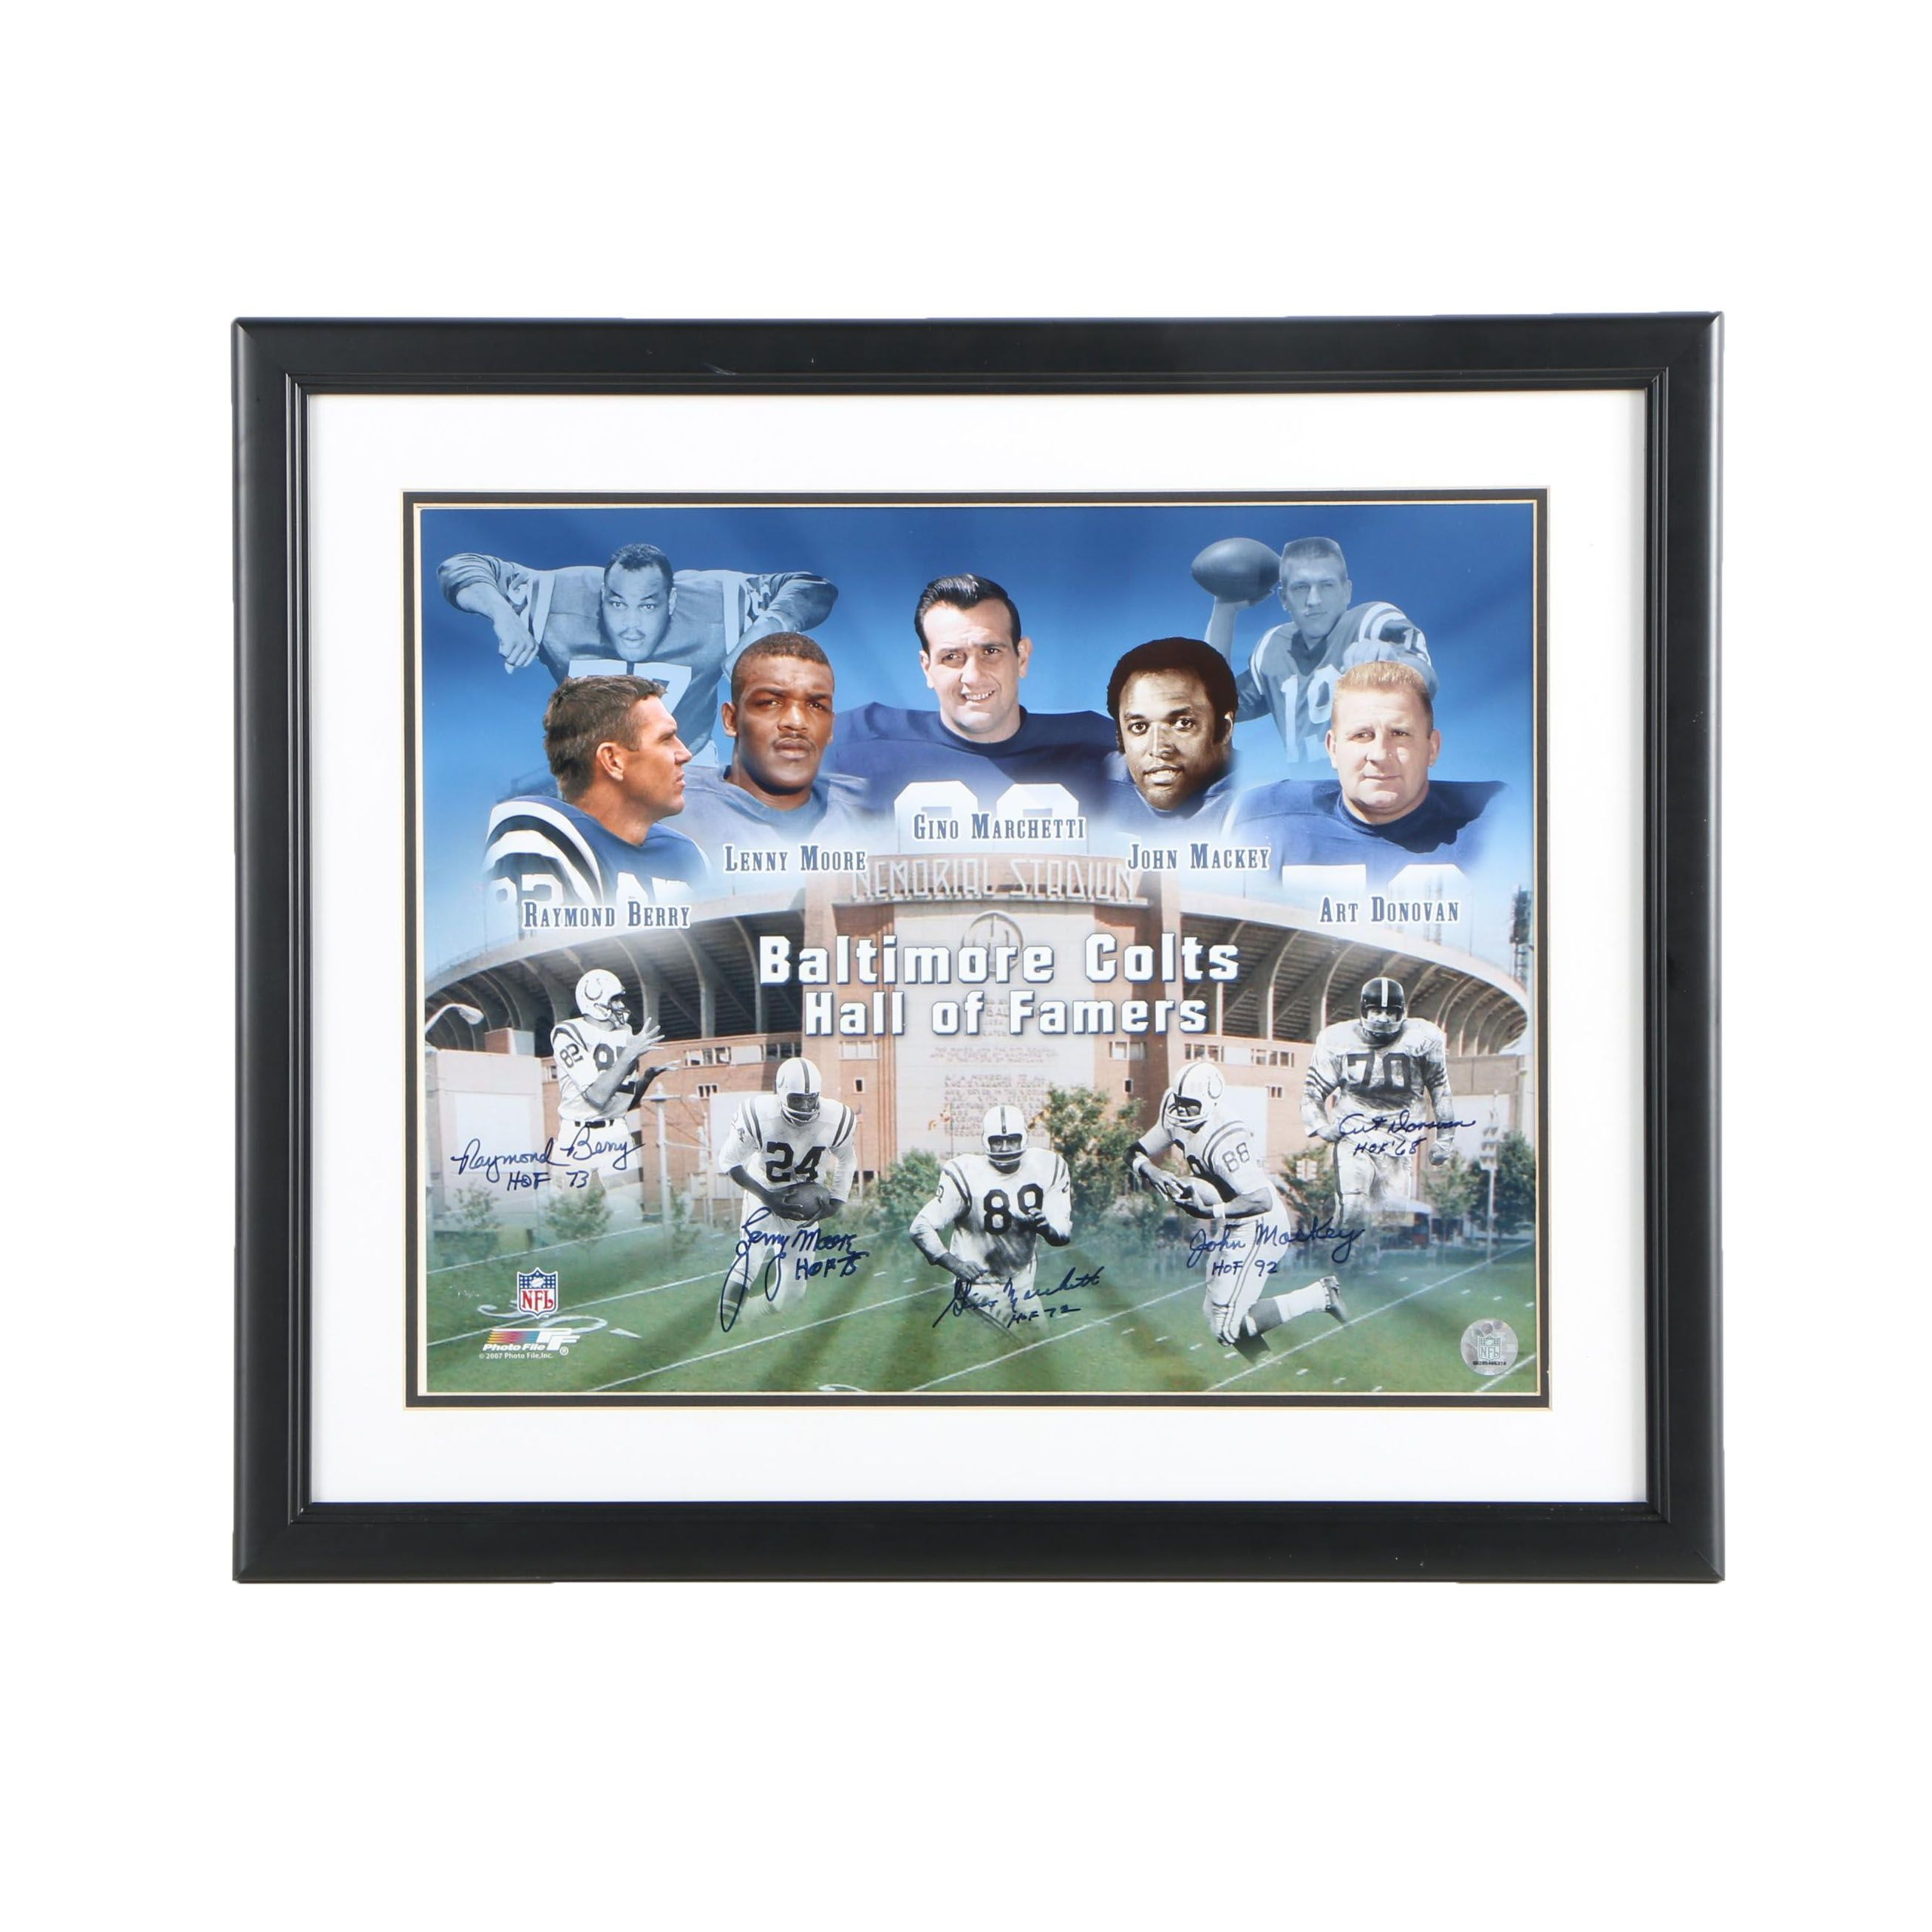 Autographed Digital Photograph of Baltimore Colts Hall of Famers